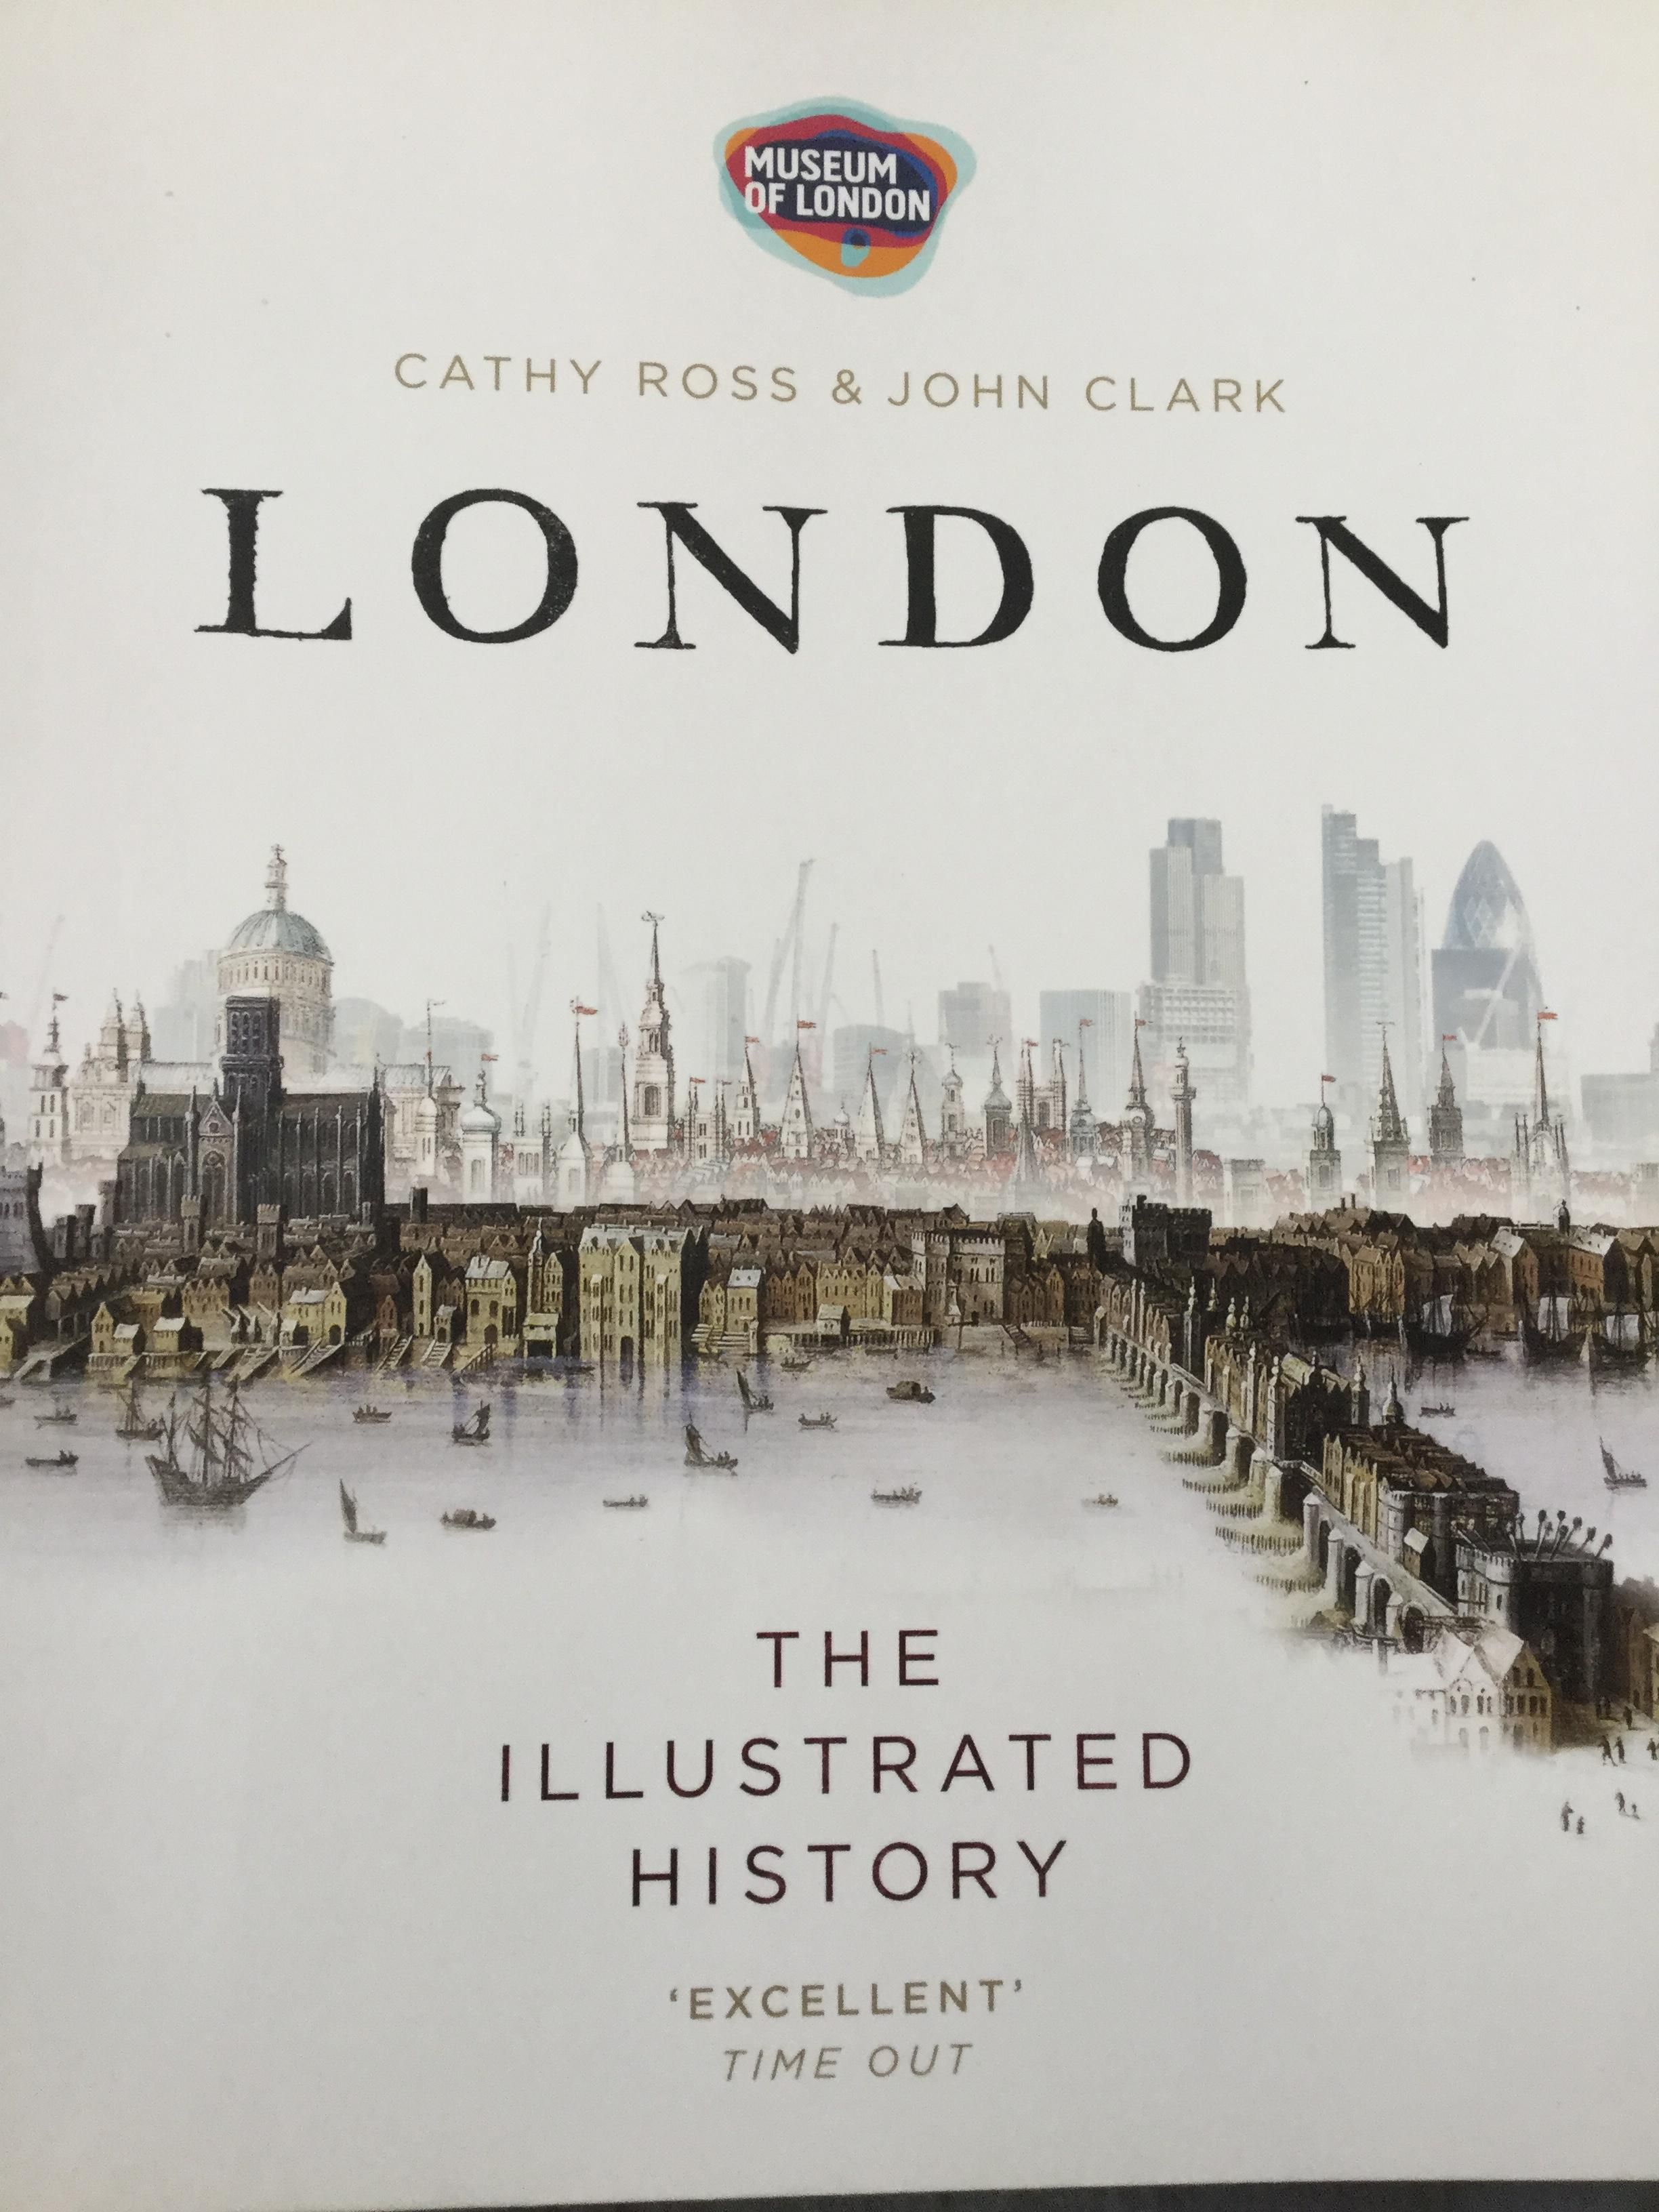 LONDON. The Illustrated History excellent. Time out. ผู้เขียน Cathy Ross & John Clark Museum of London.